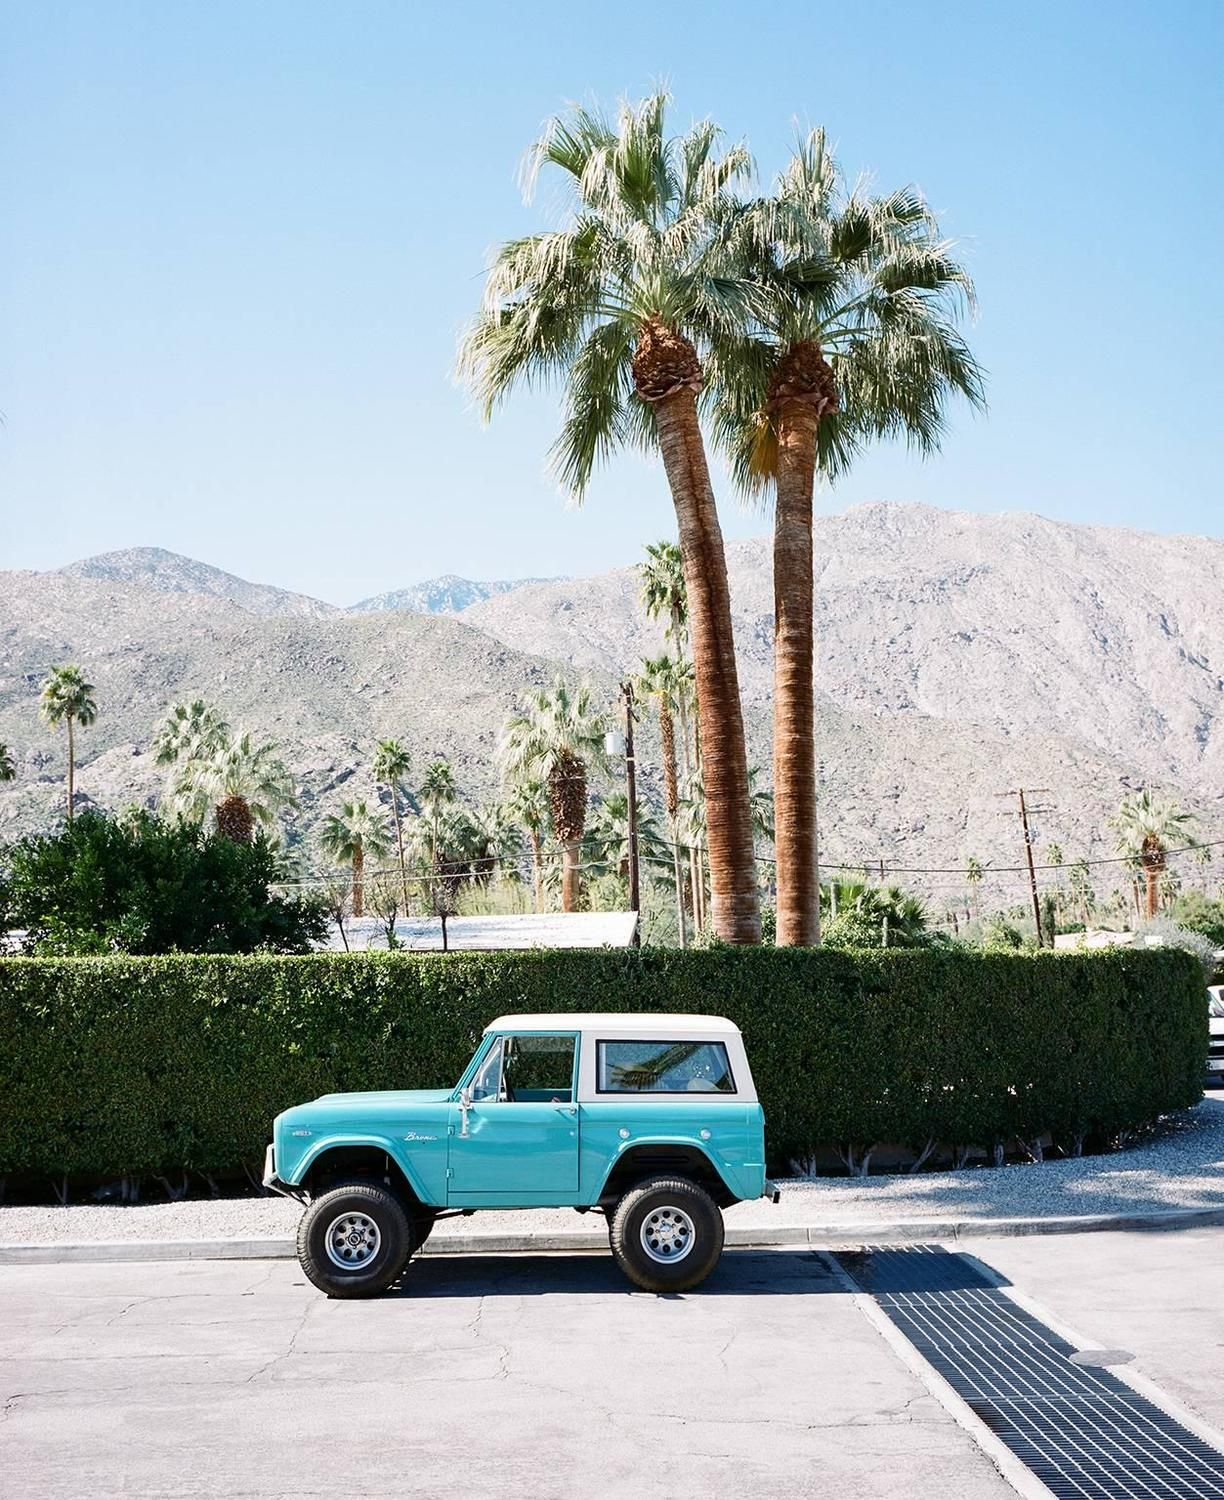 Color Photography at 1stdibs